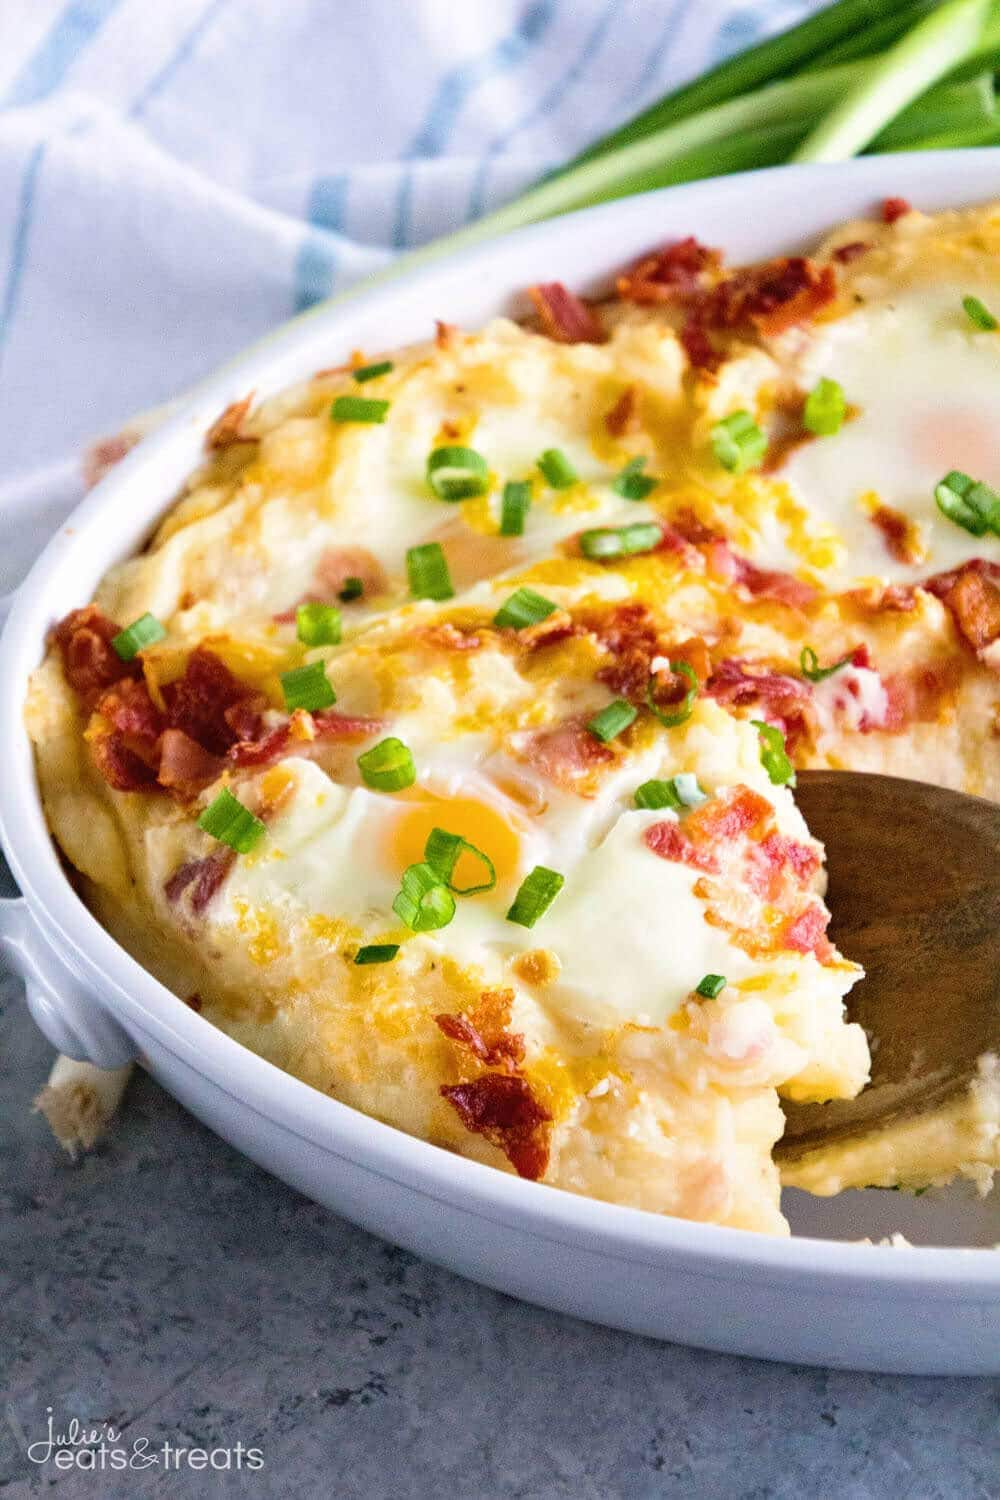 Cheesy Mashed Potato Egg Casserole ~ Perfect Breakfast or Brunch Casserole Loaded with Mashed Potatoes, Eggs, Cheese and Bacon! This Hearty Breakfast Recipe is Perfect for Entertaining!